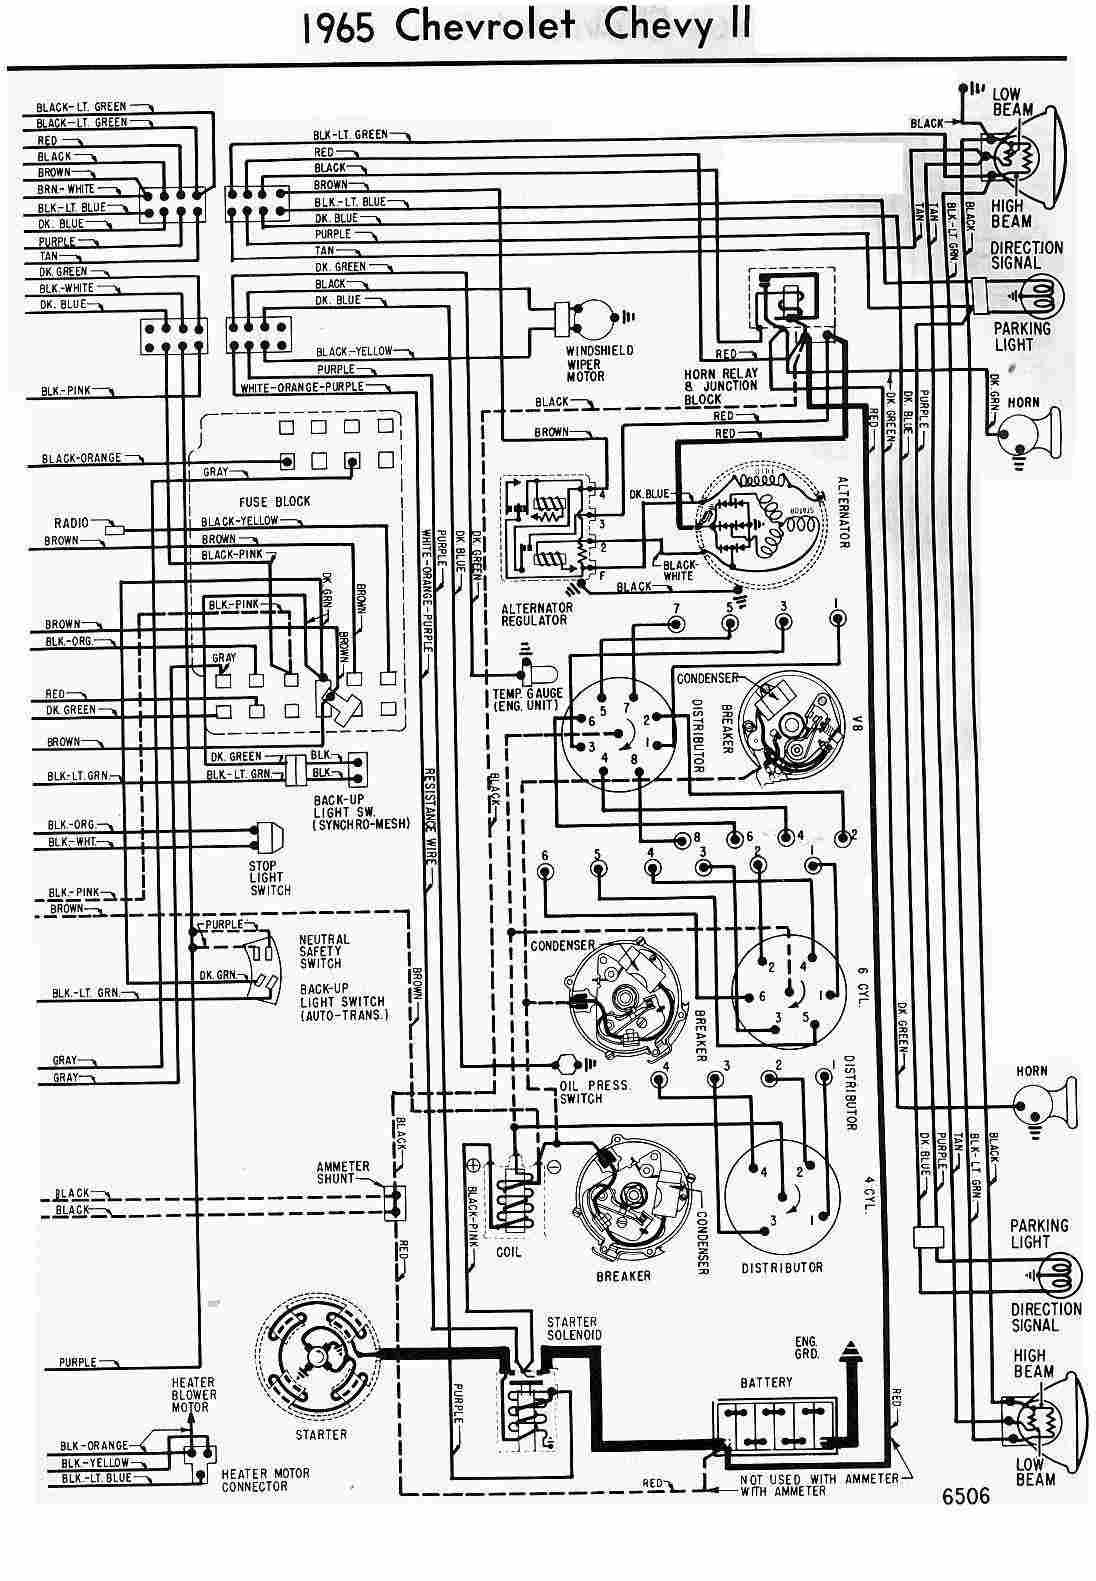 chevrolet car manuals wiring diagrams pdf fault codes rh automotive manuals net chevrolet beat service manual pdf chevrolet beat owners manual